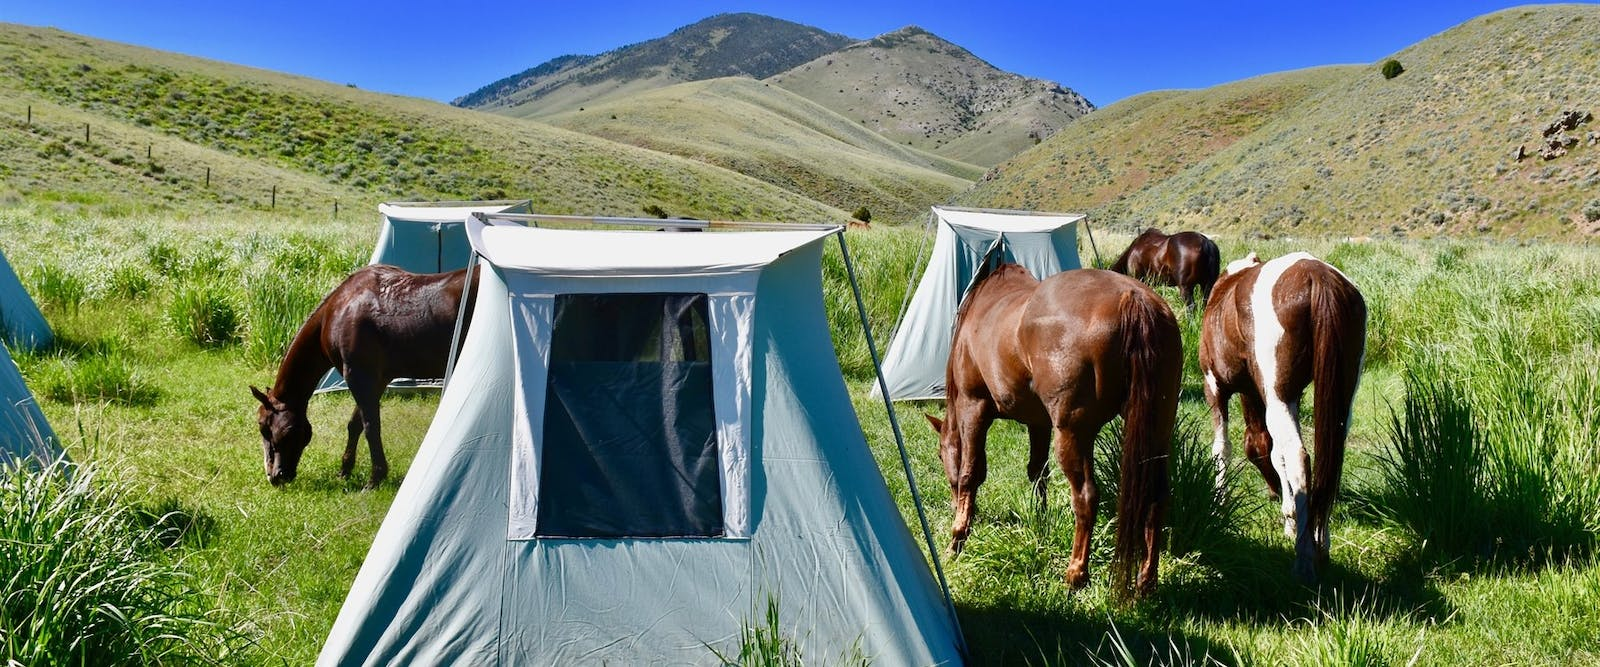 Camping at Medicine Lodge Horse Drives at Silver Spur Ranch